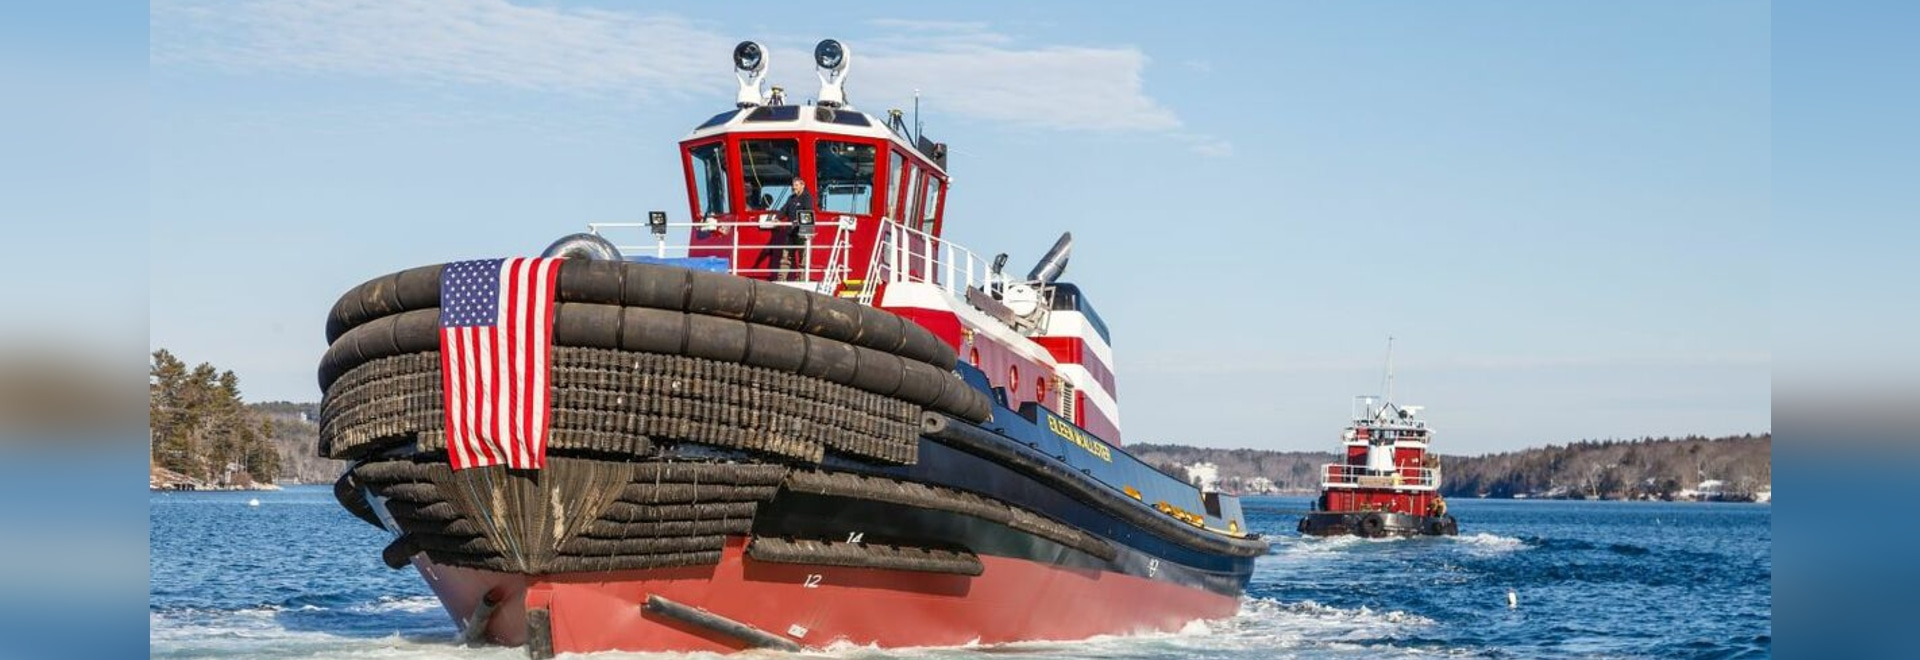 The tug will supply McAllister's customers with the power they need to make their port connections in a safe and efficient fashion.